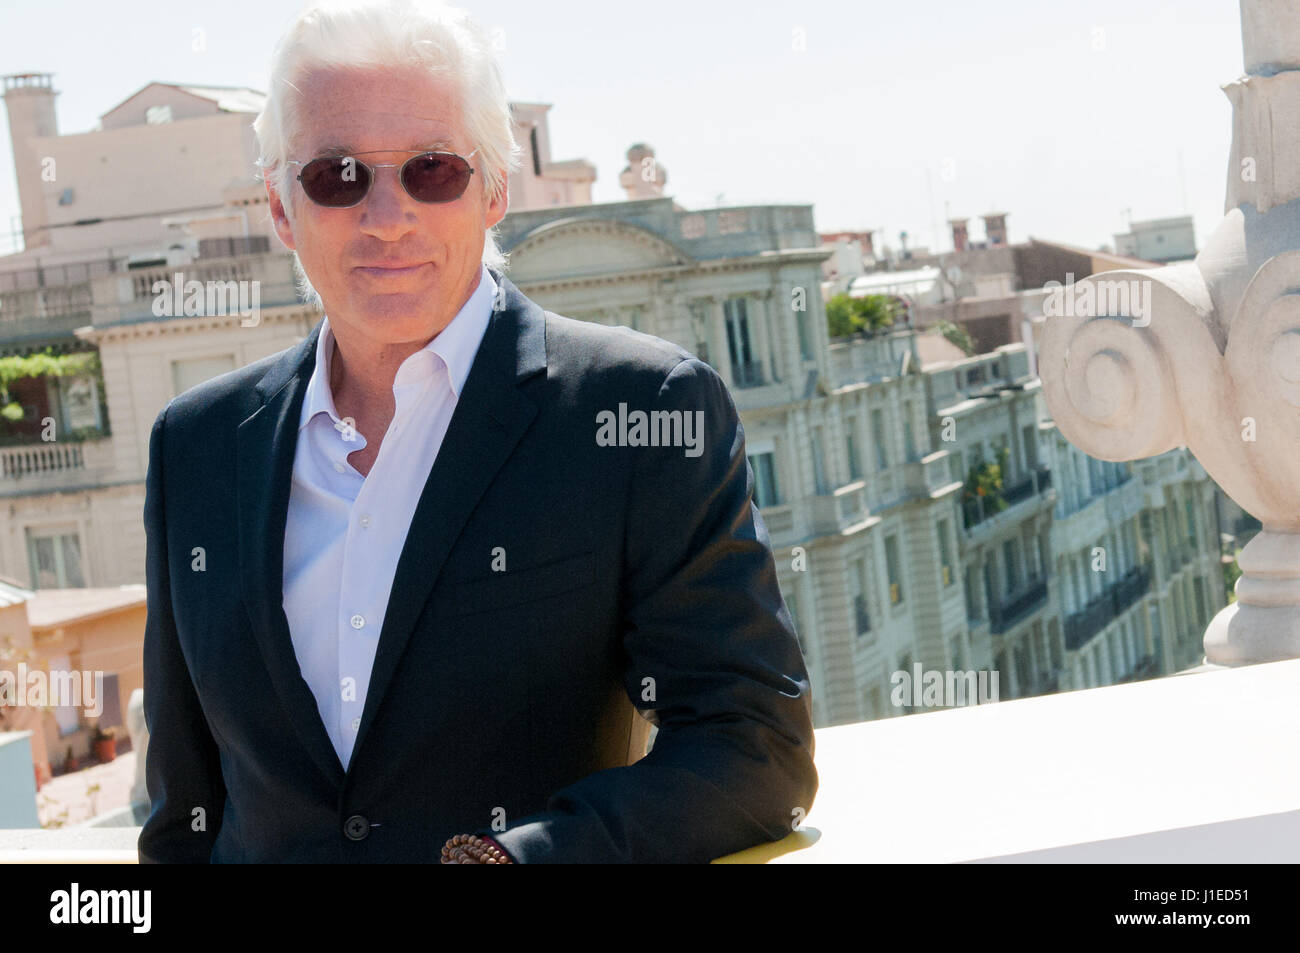 The american actor Richard Gere and film director Joseph Cedar  opens the first International Barcelona Film Festival - Stock-Bilder